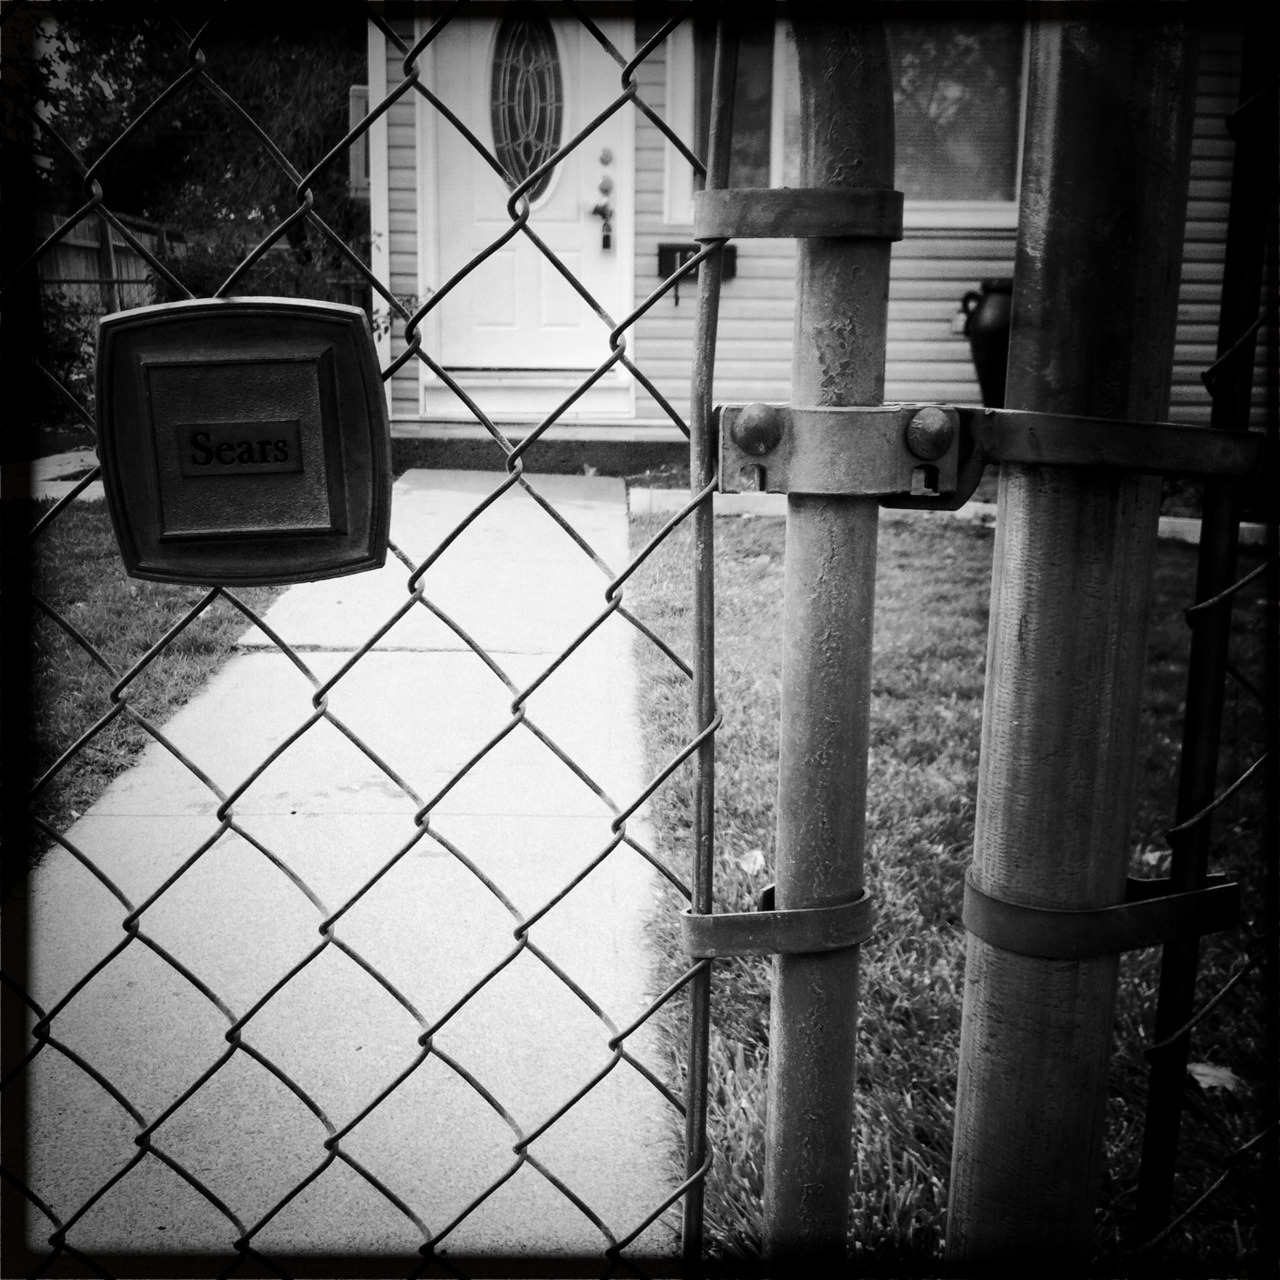 Sears Fence Taken with Hipstamatic, John S Lens, BlacKeys SuperGrain Film, No Flash.